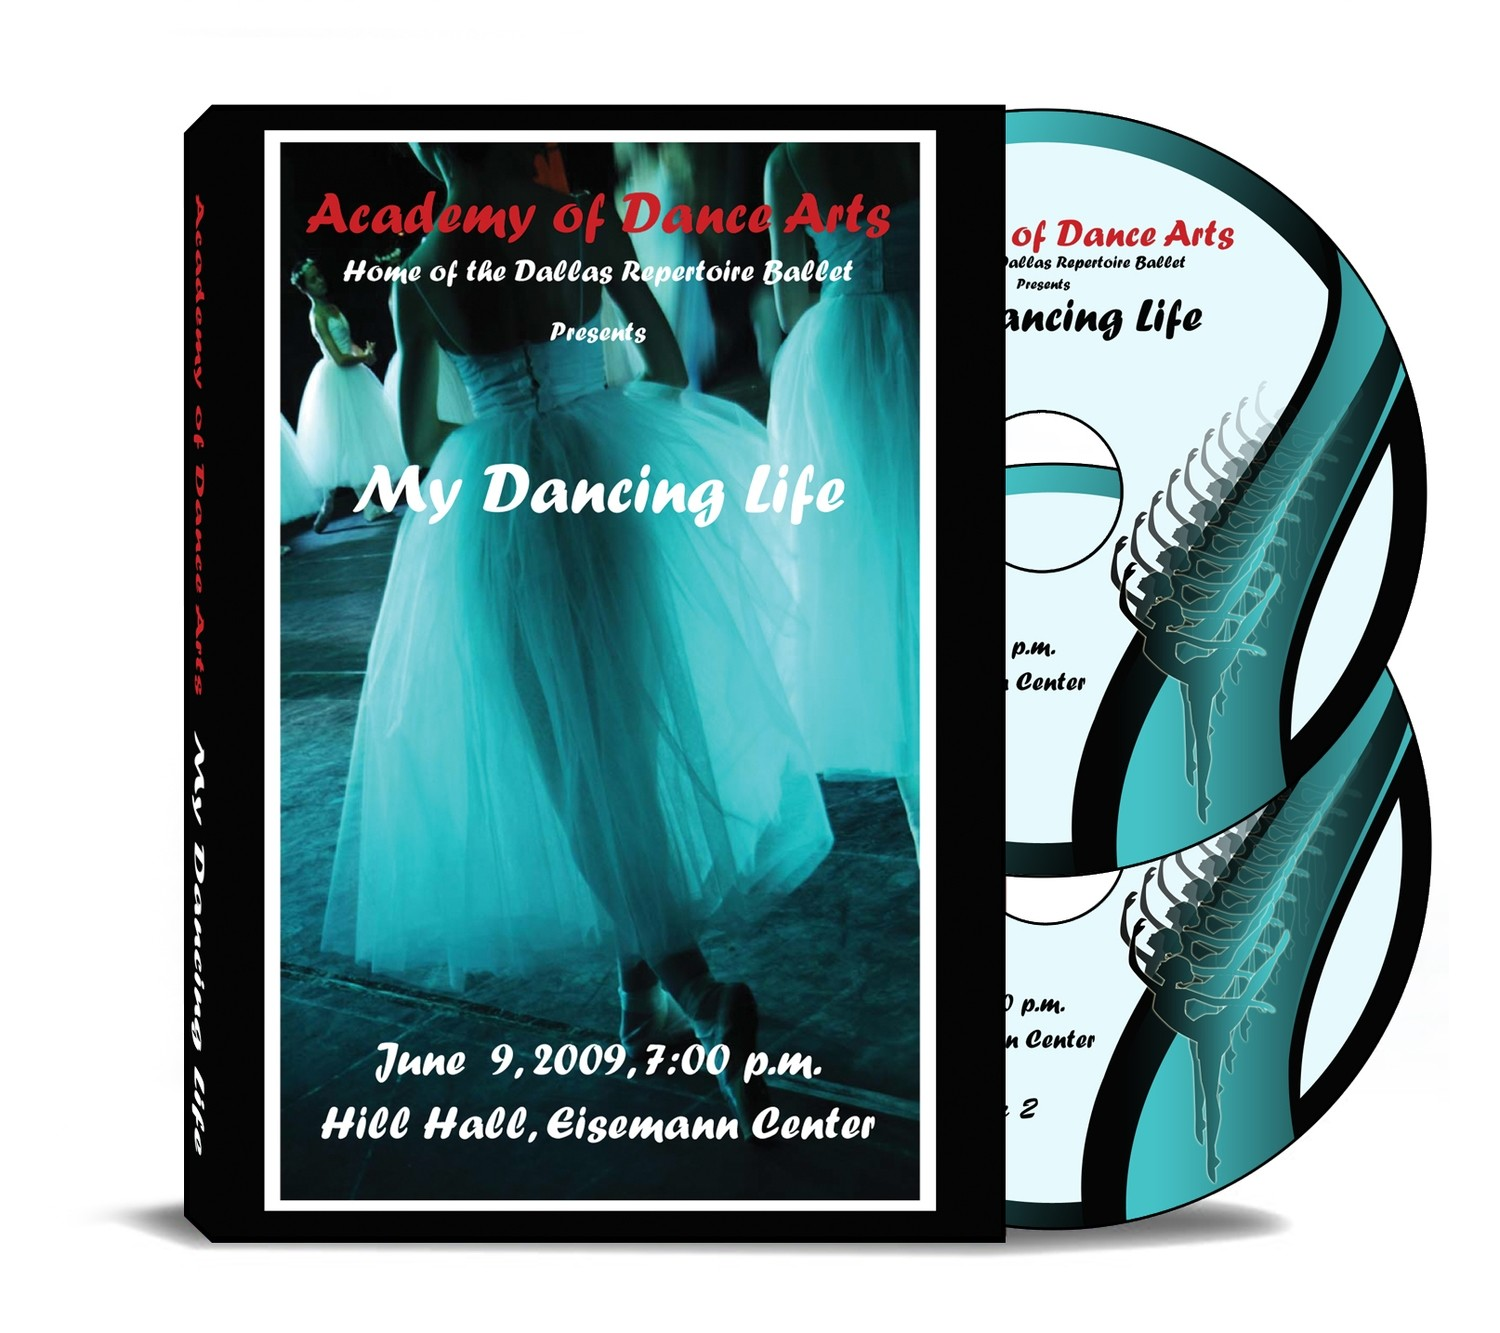 My Dancing Life 2009 DVD